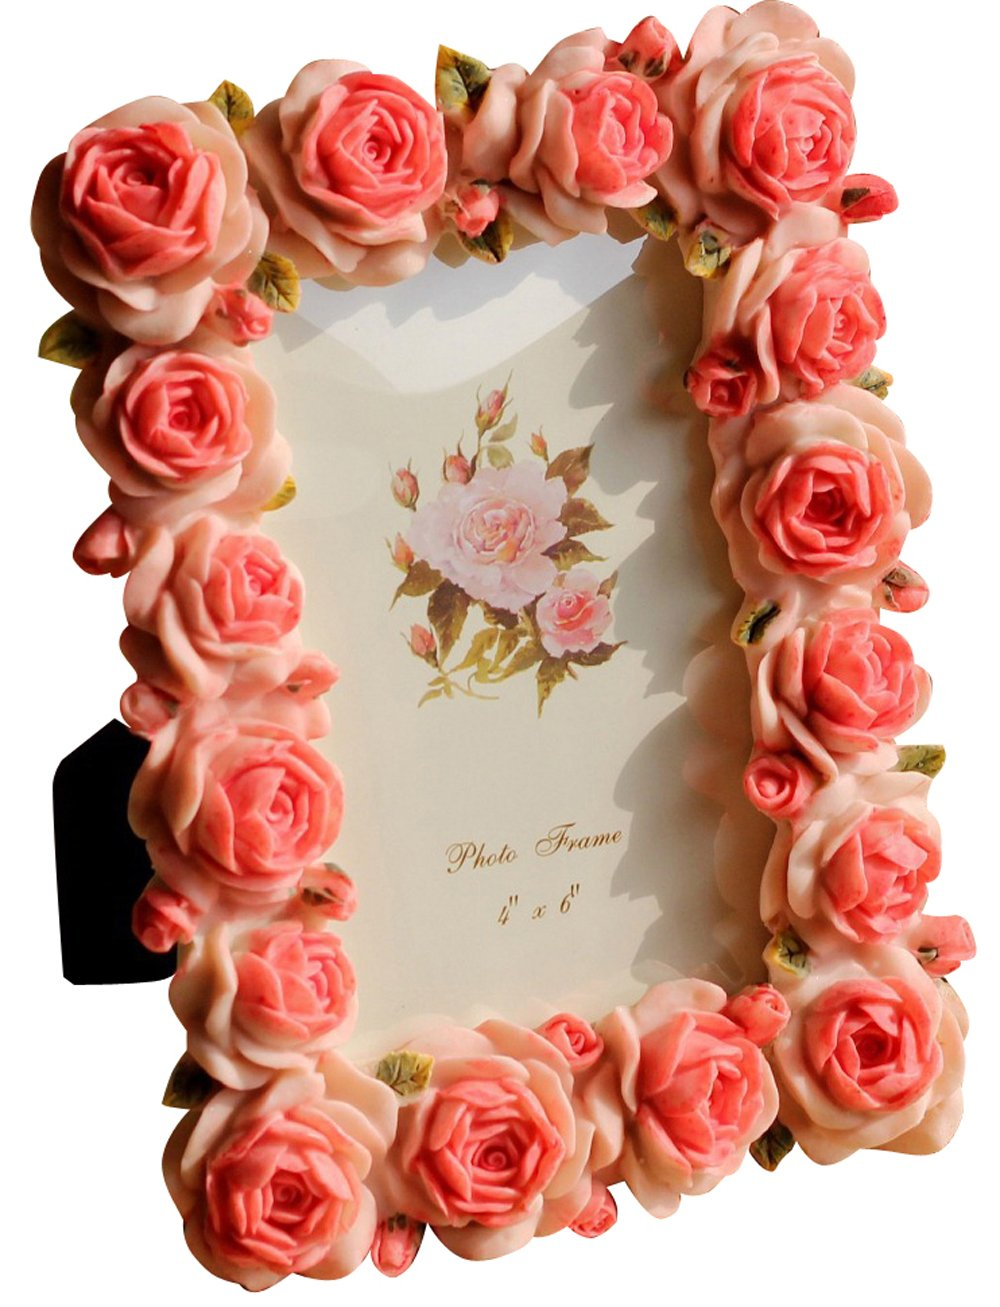 Giftgarden Rose 4x6 Picture Frames for Photo 4 by 6 inch Wedding Anniversary Valentine's Day Gifts for Girlfriend